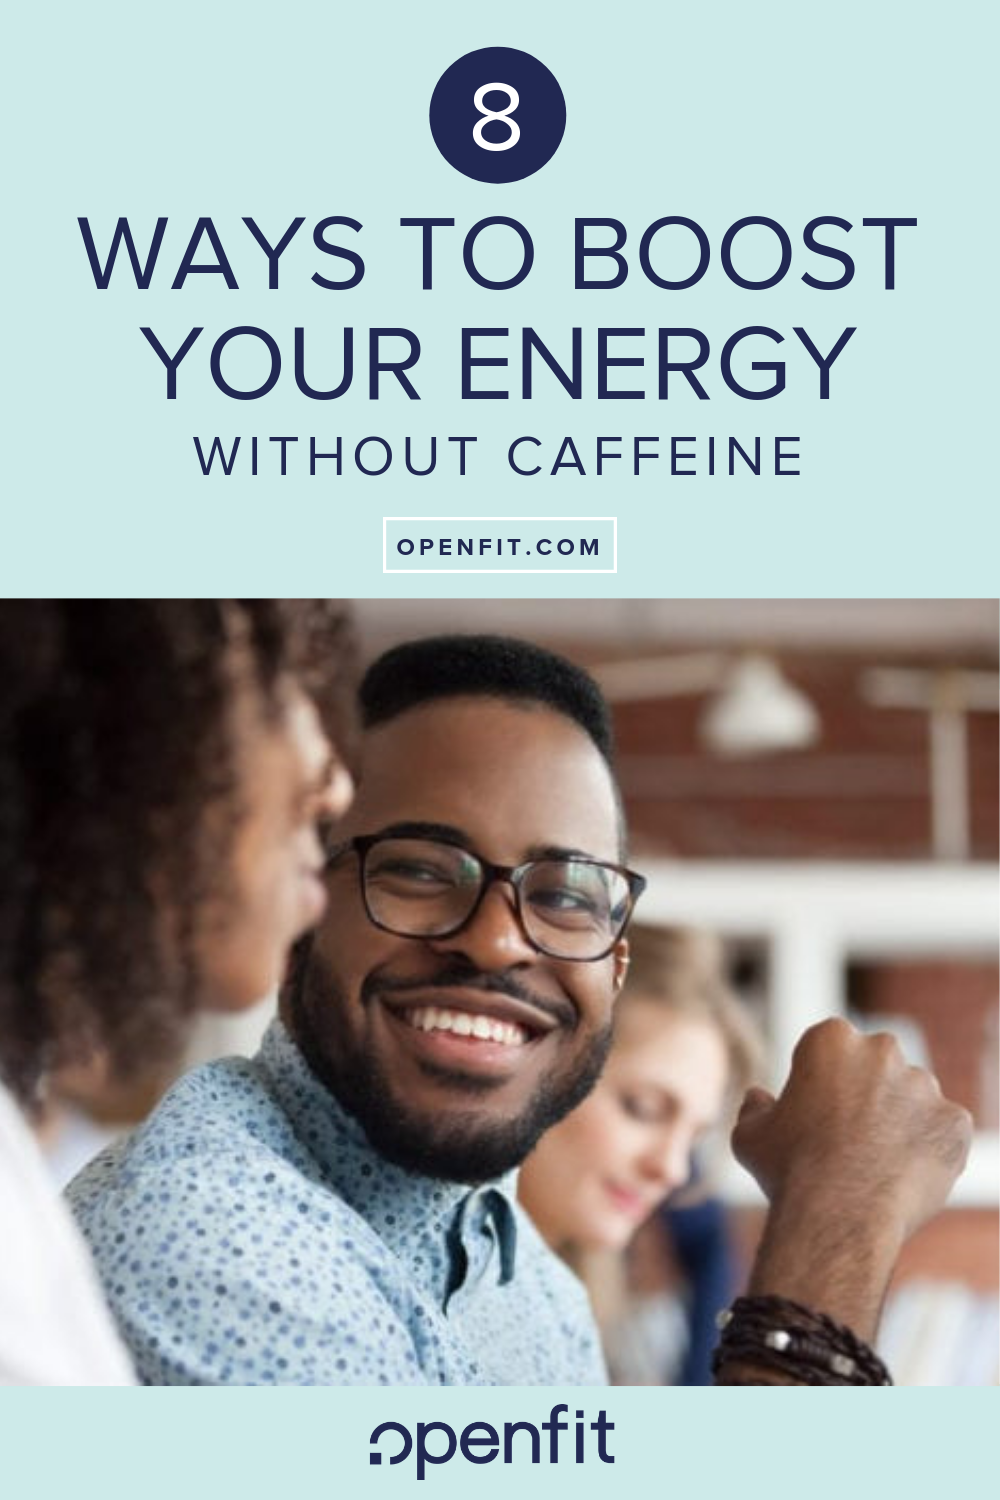 Ways to boost your energy without caffeine